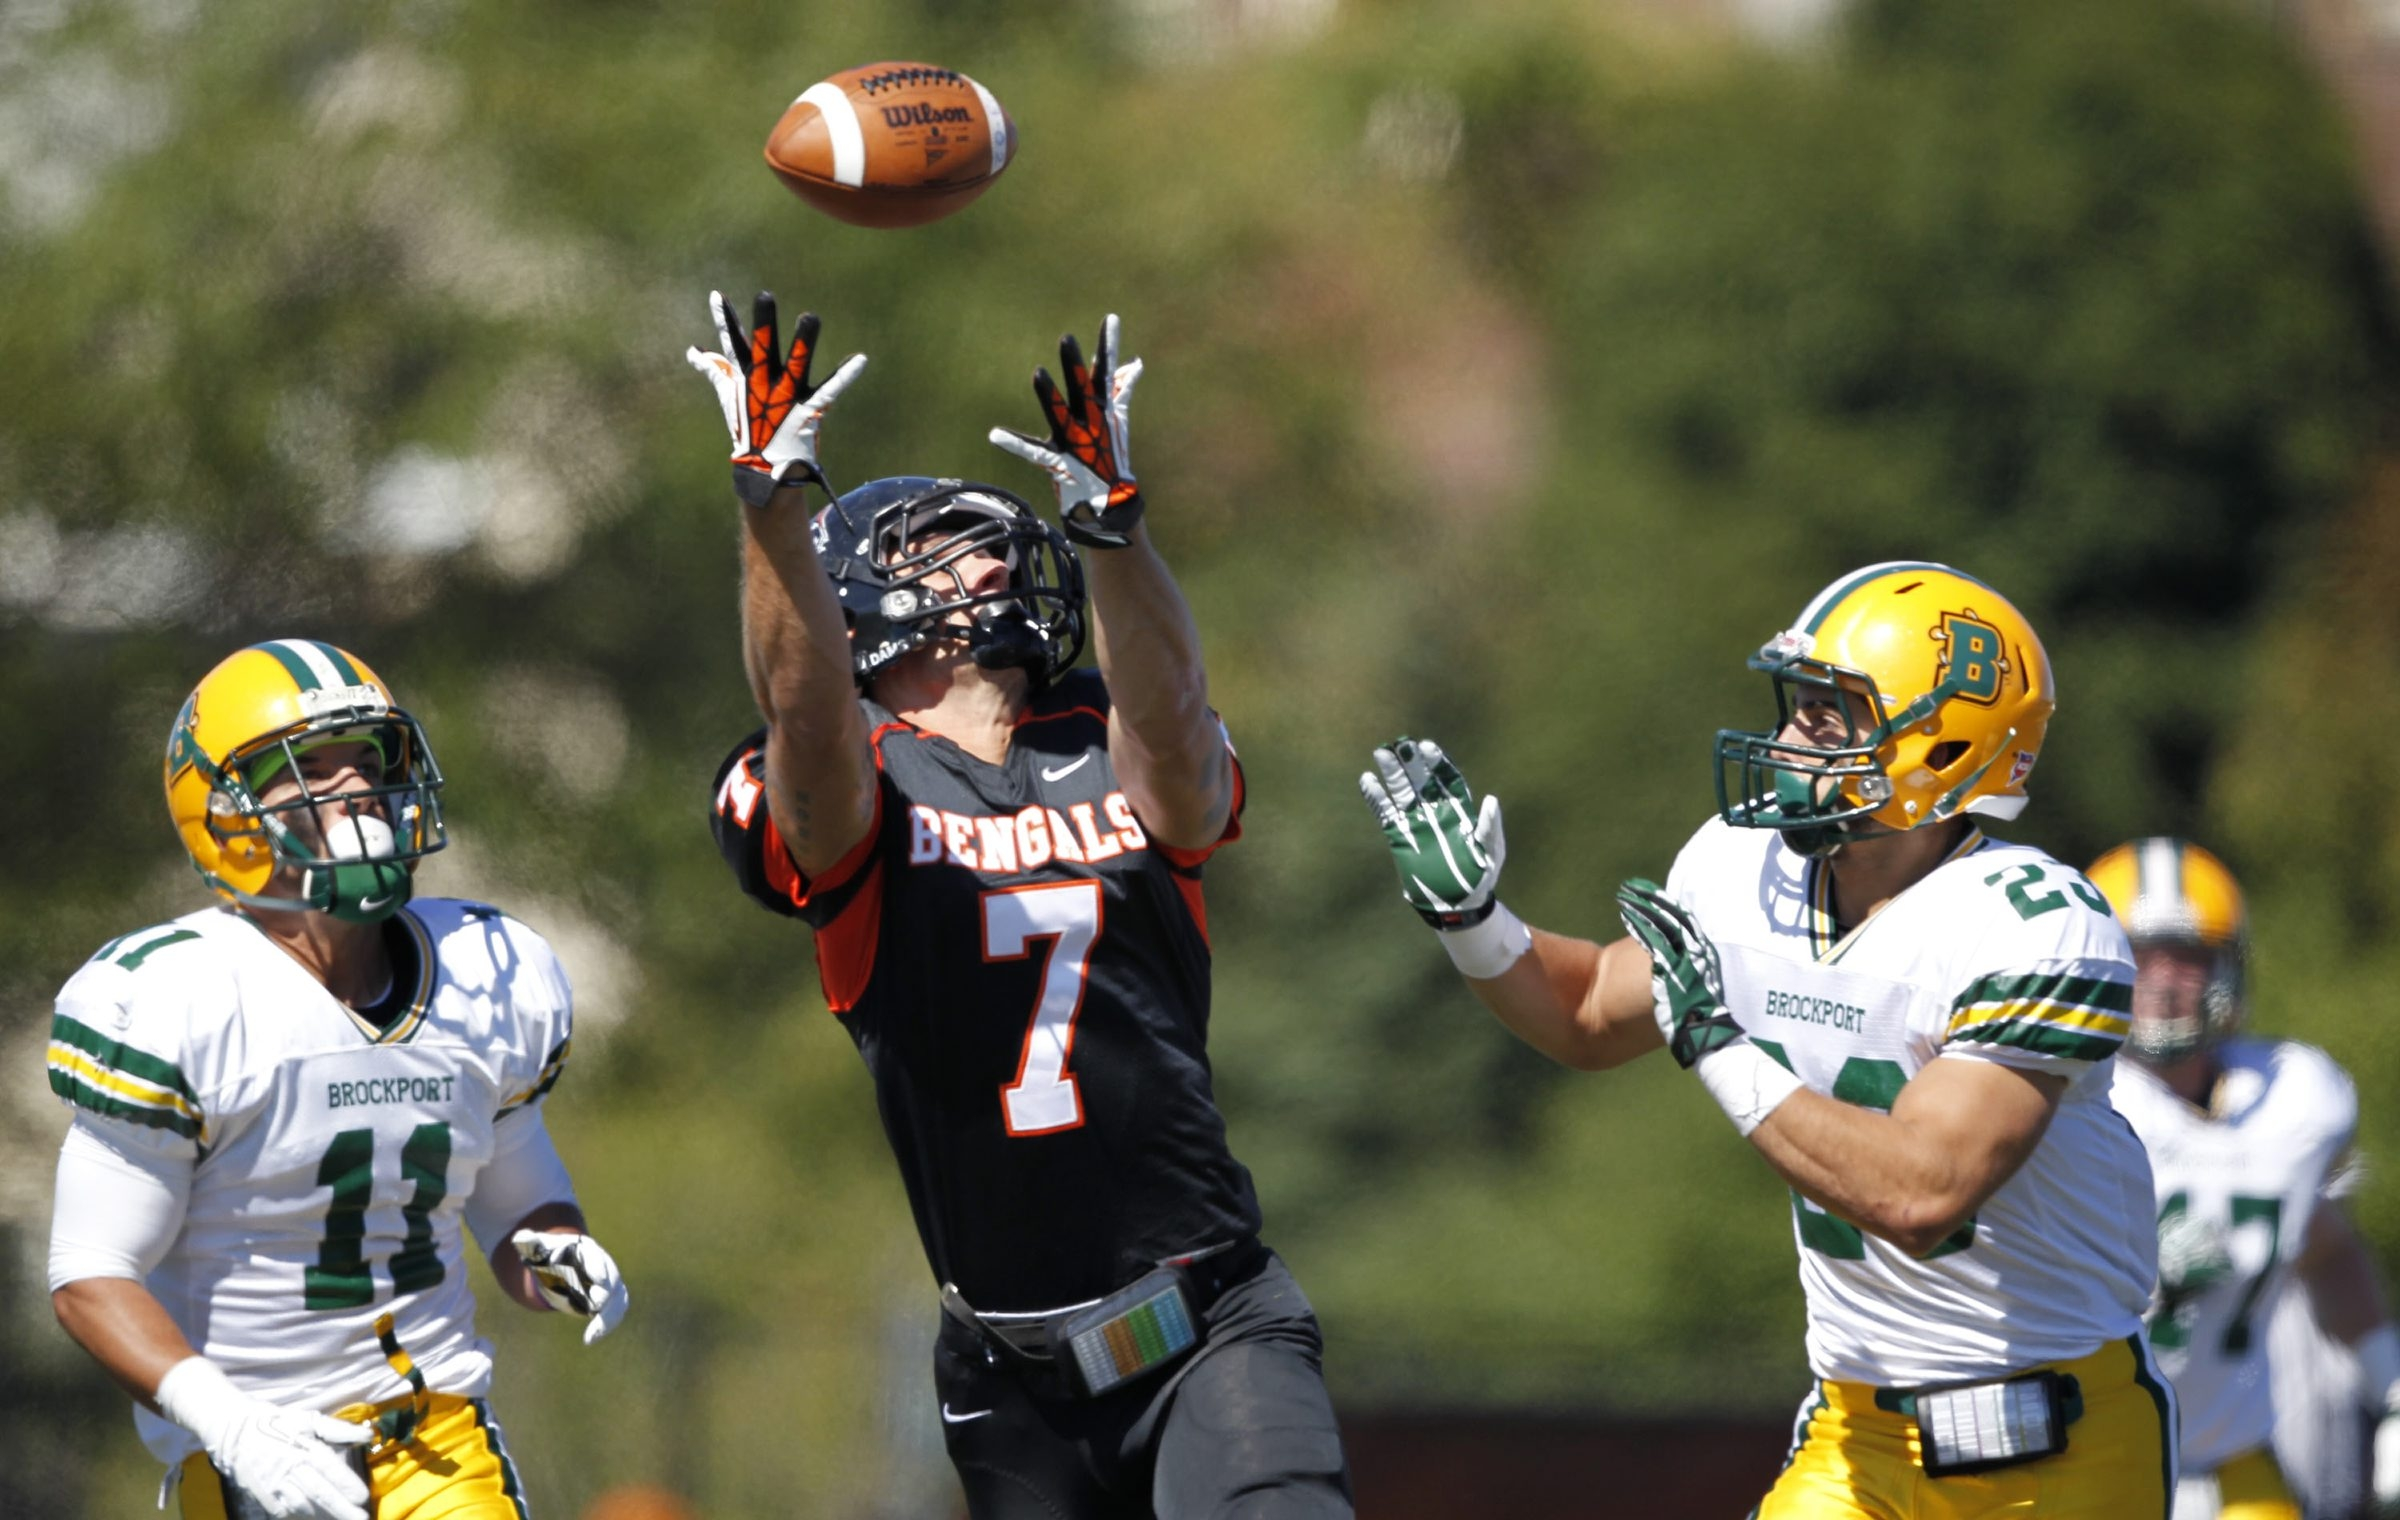 Buffalo State's Mike Doherty (7) makes one of his 10 catches in Saturday's 42-40 win over Brockport.